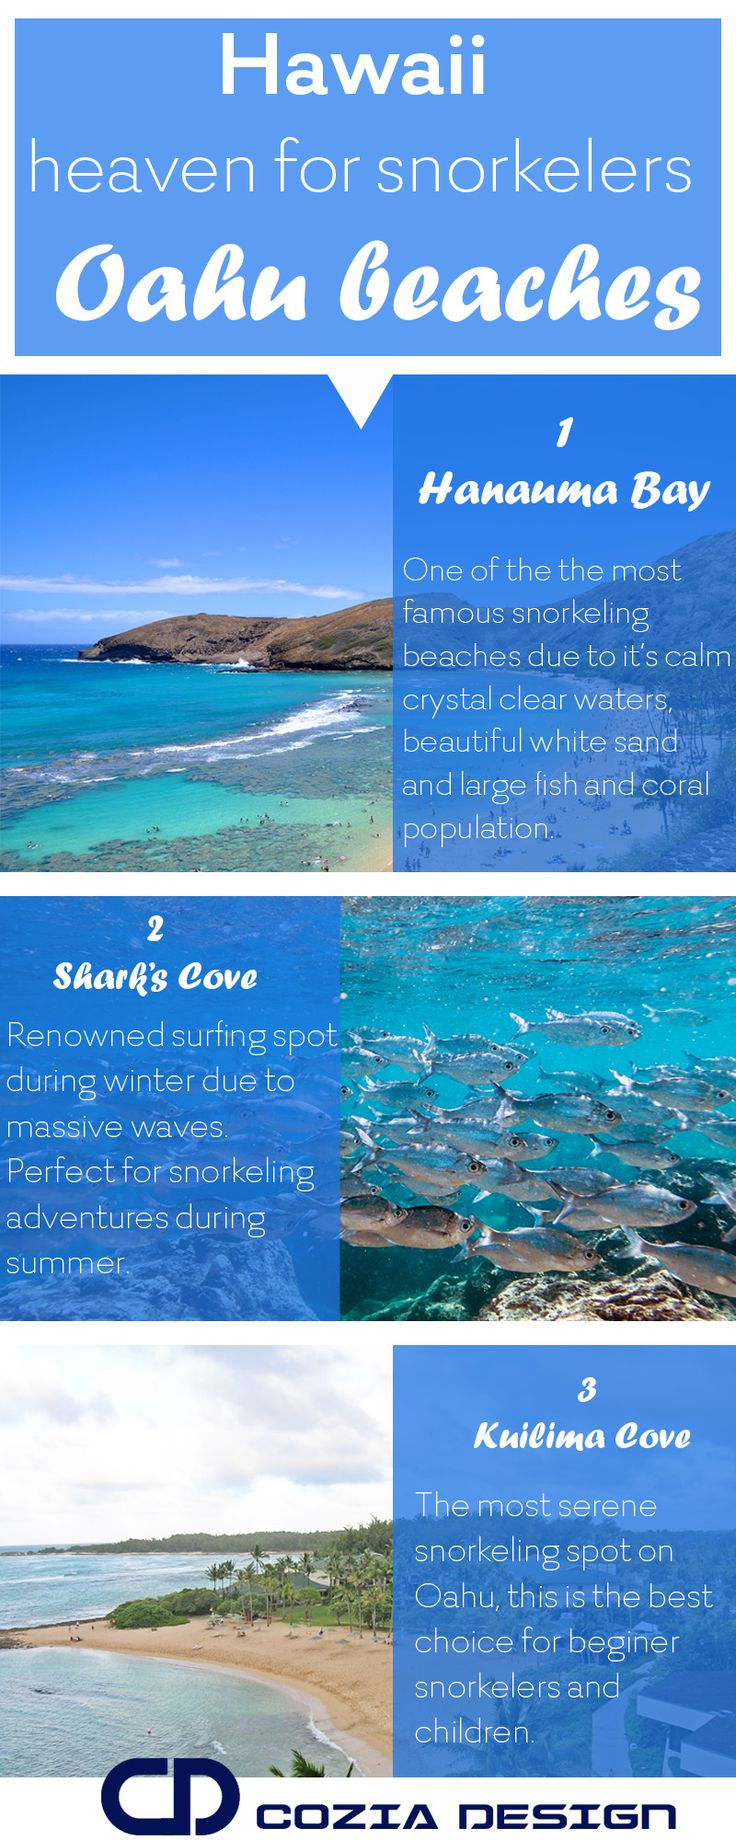 One of the most popular tourist destinations in Hawaii Hanauma Bay is the perfect getaway for a snorkeling vacation.